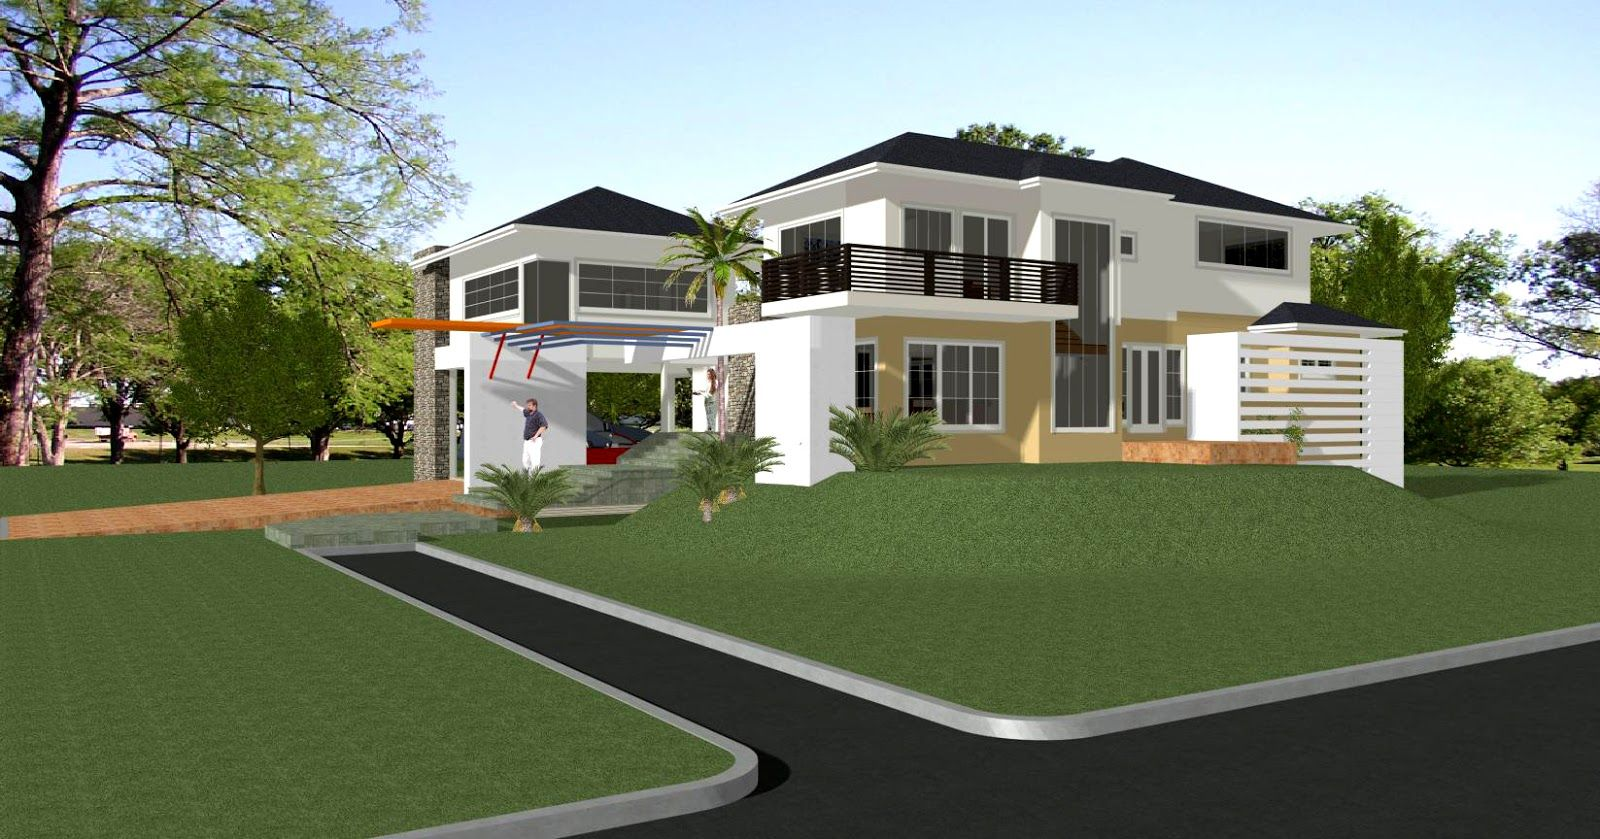 House Design Iloilo House Design In Philippines Iloilo House Designs .